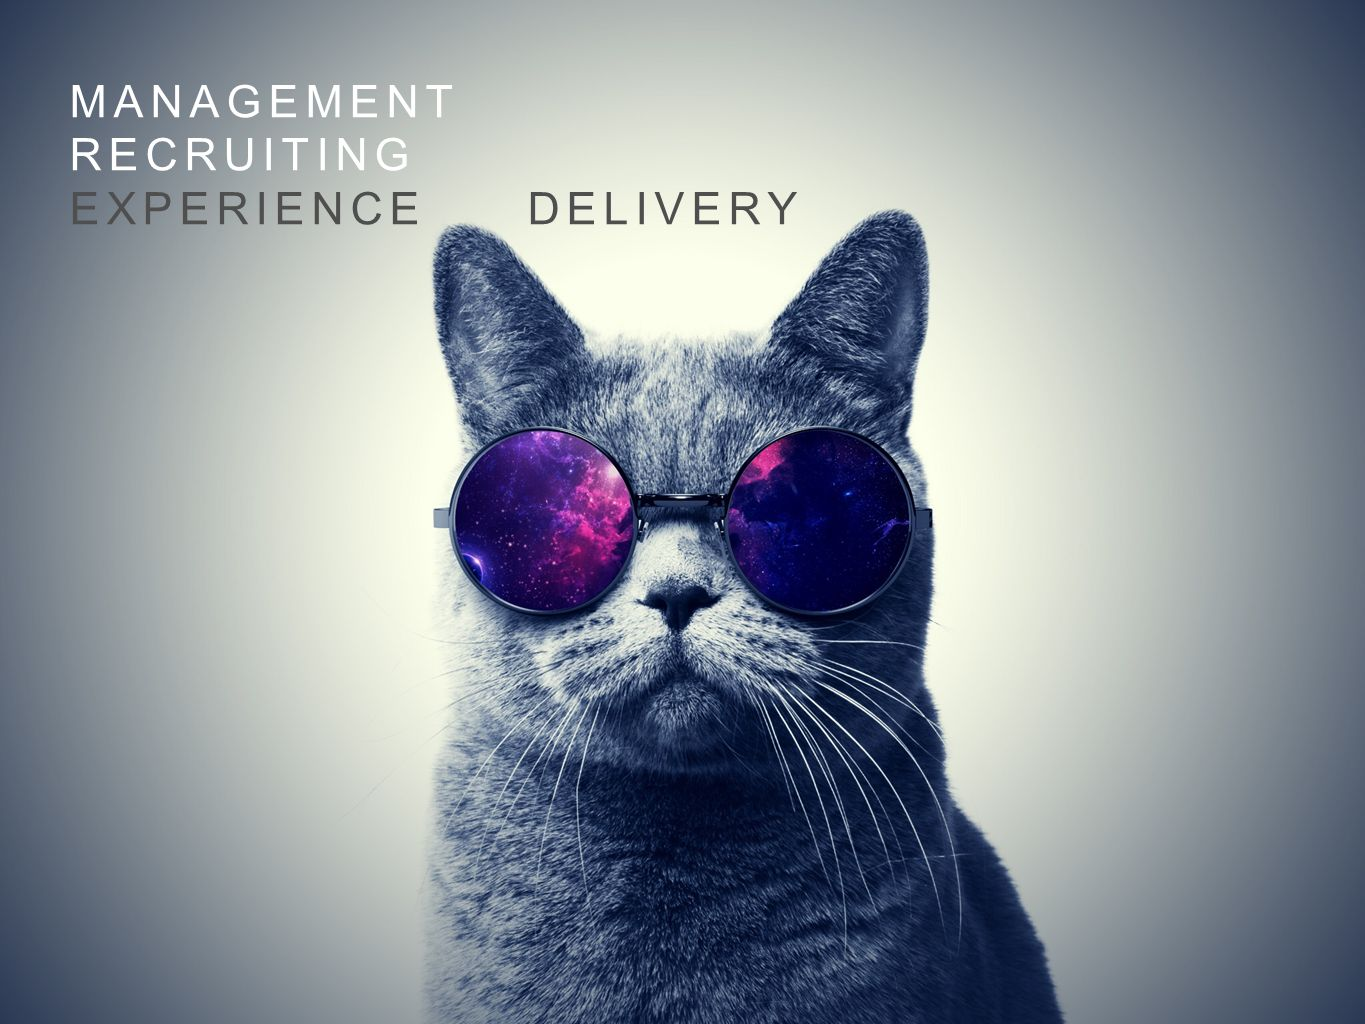 Management Recruiting Experience delivery